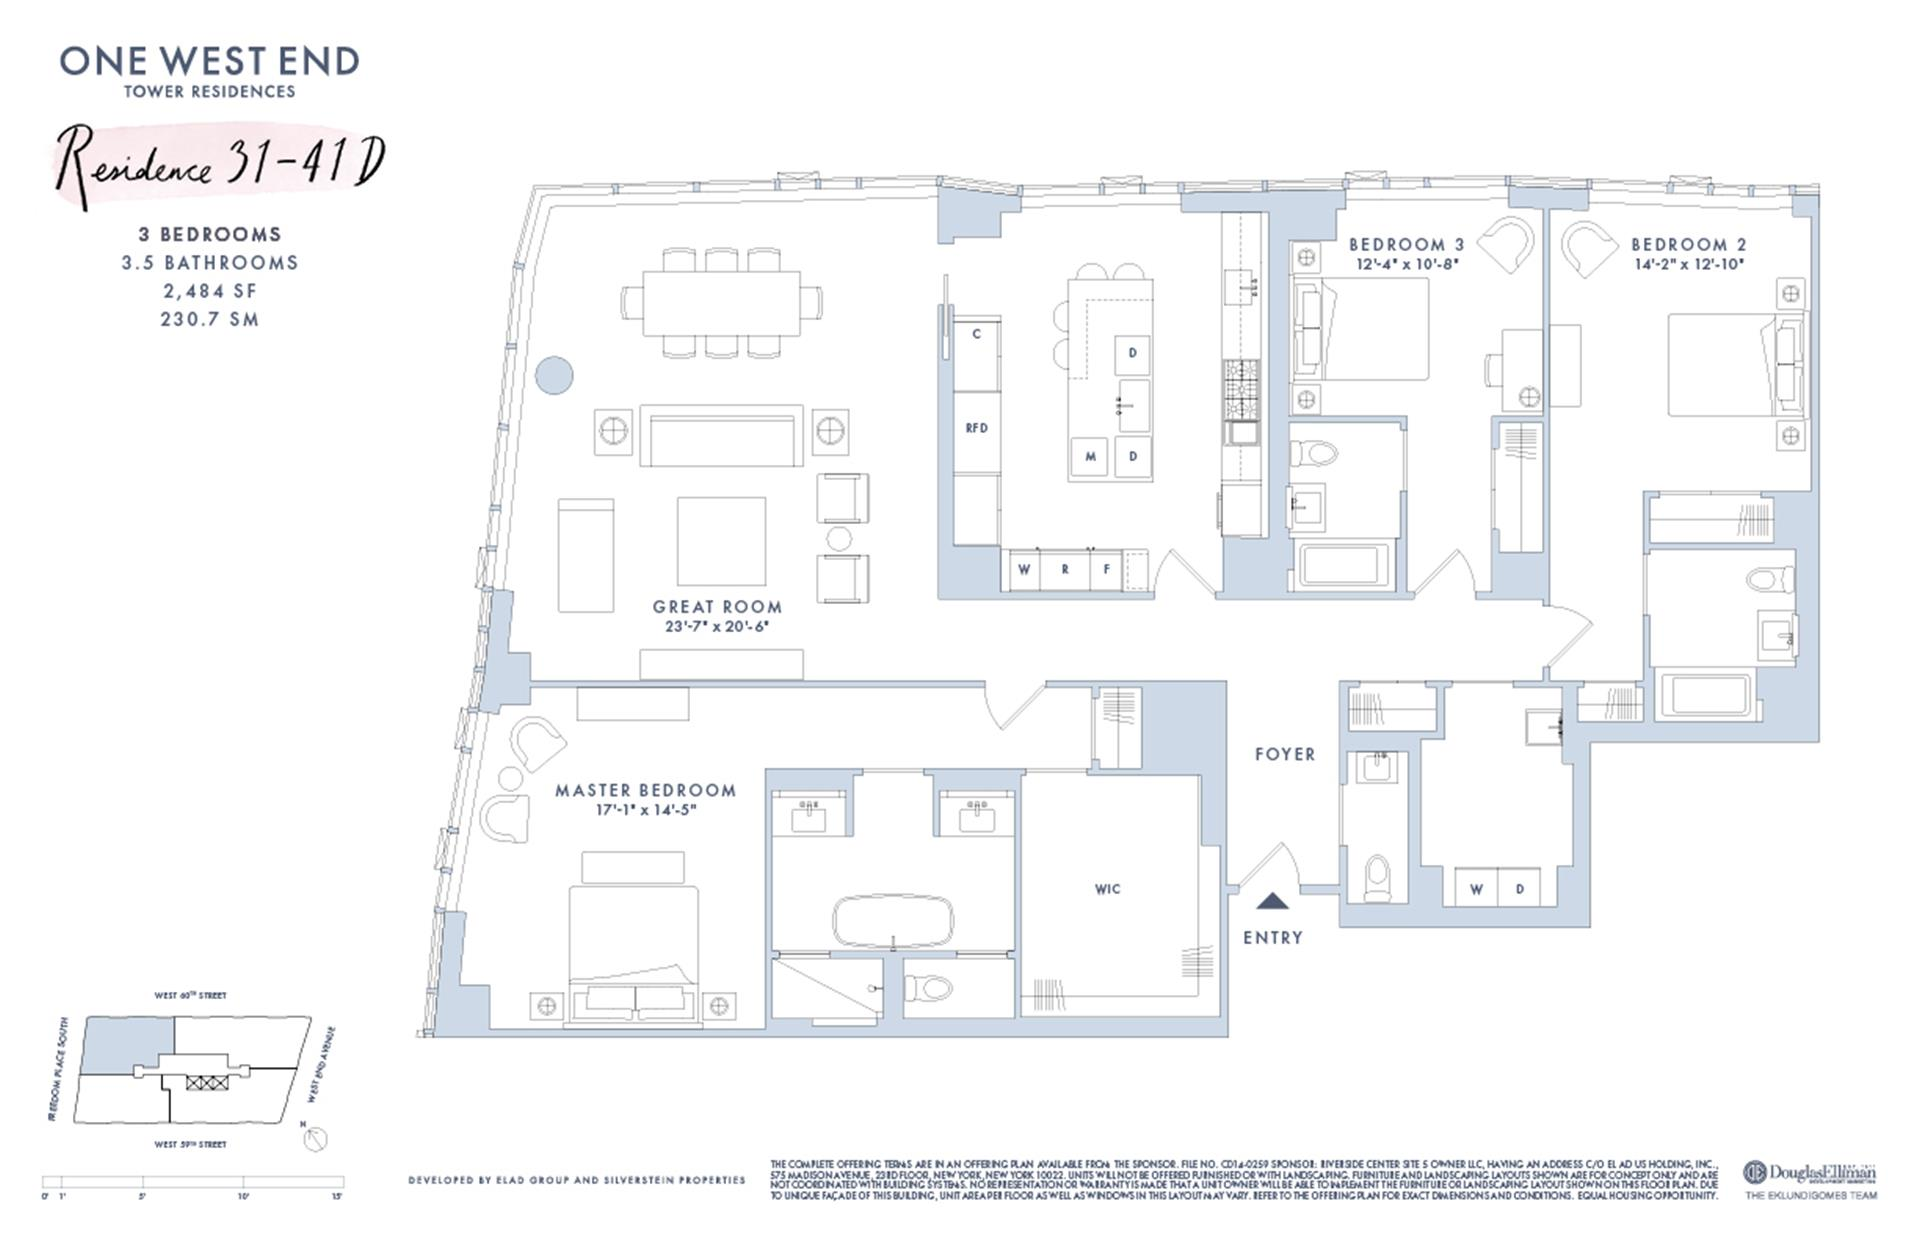 Floor plan of One West End, 1 West End Avenue, 39D - Upper West Side, New York